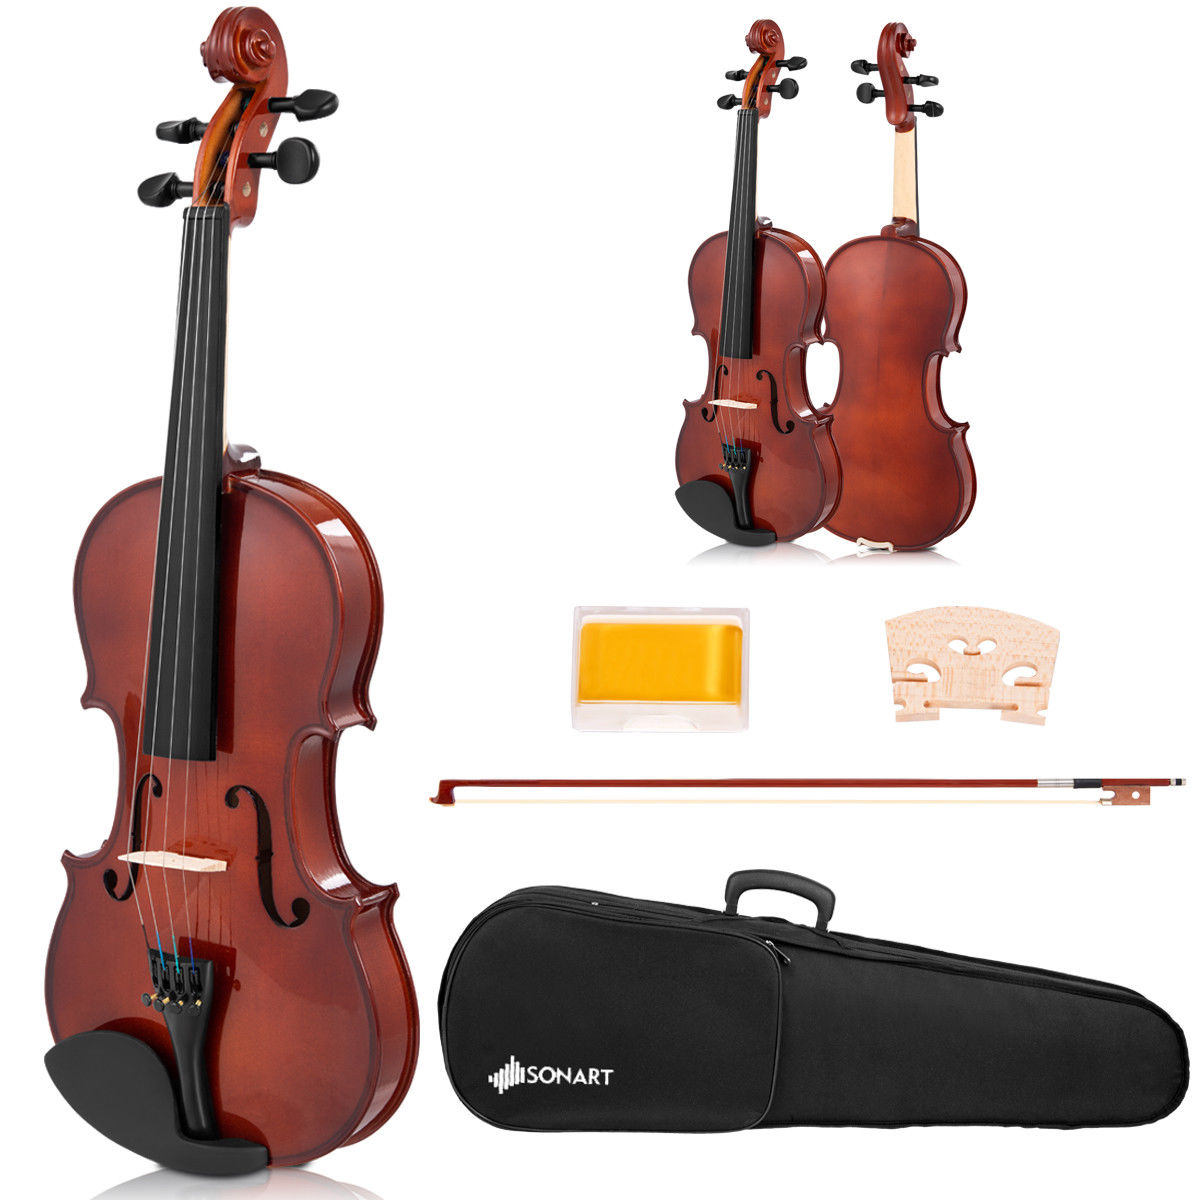 Full Size 4/4 Violin Solid Wood w/ Hard Case Bow Rosin Bridge Student Starter - image 10 de 10